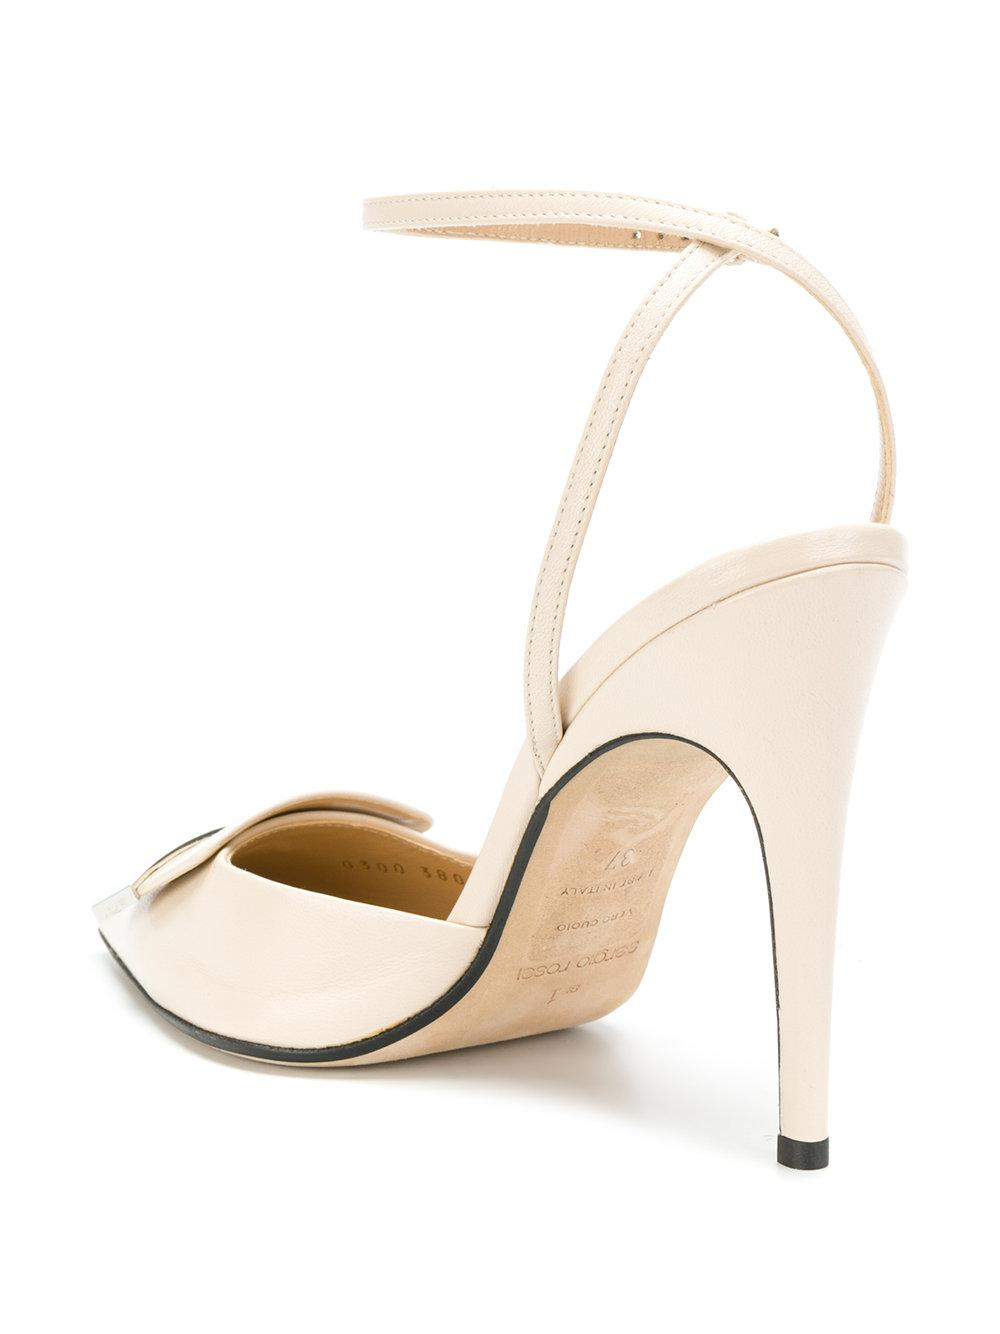 pointed toe pumps - Nude & Neutrals Sergio Rossi aKbbk05i